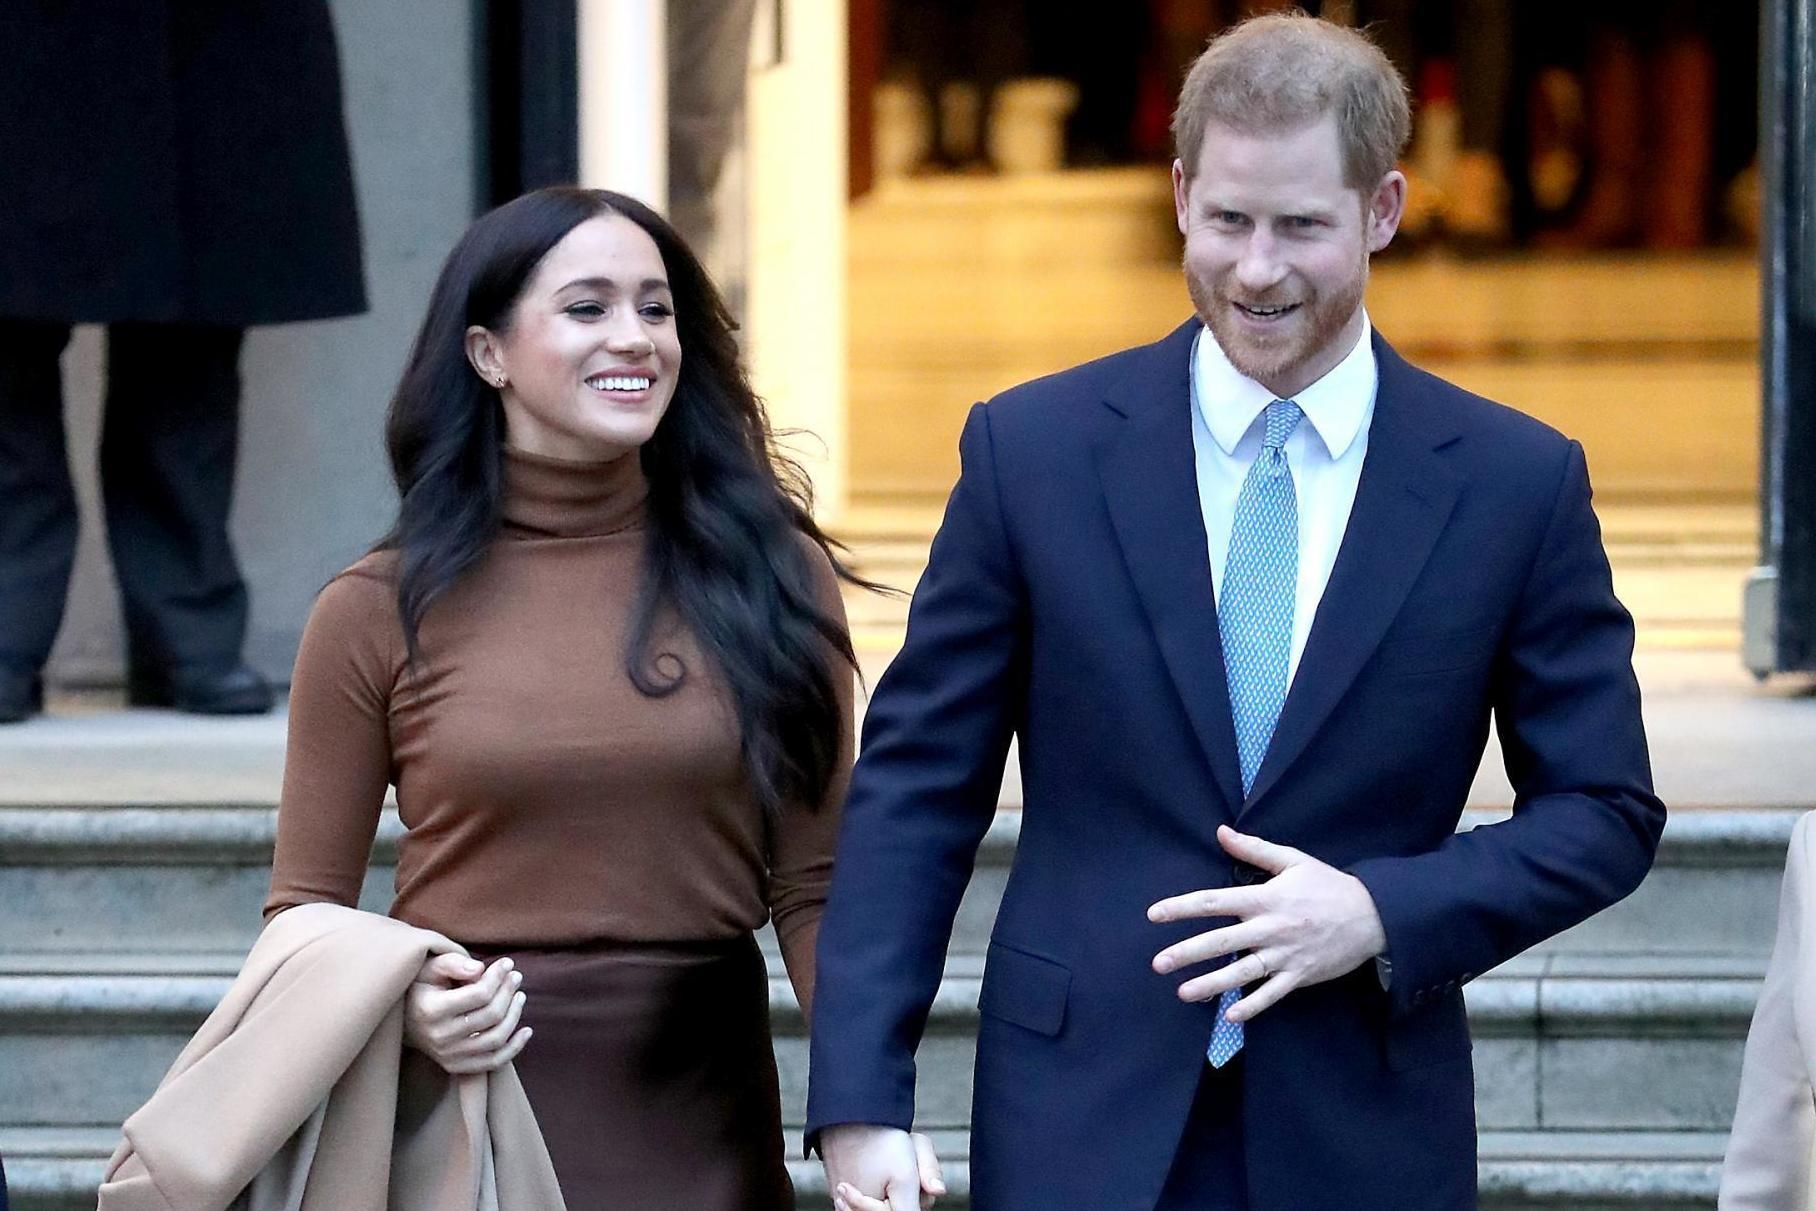 how much meghan markle and prince harry will be worth after leaving royal family according to us branding expert the independent the independent how much meghan markle and prince harry